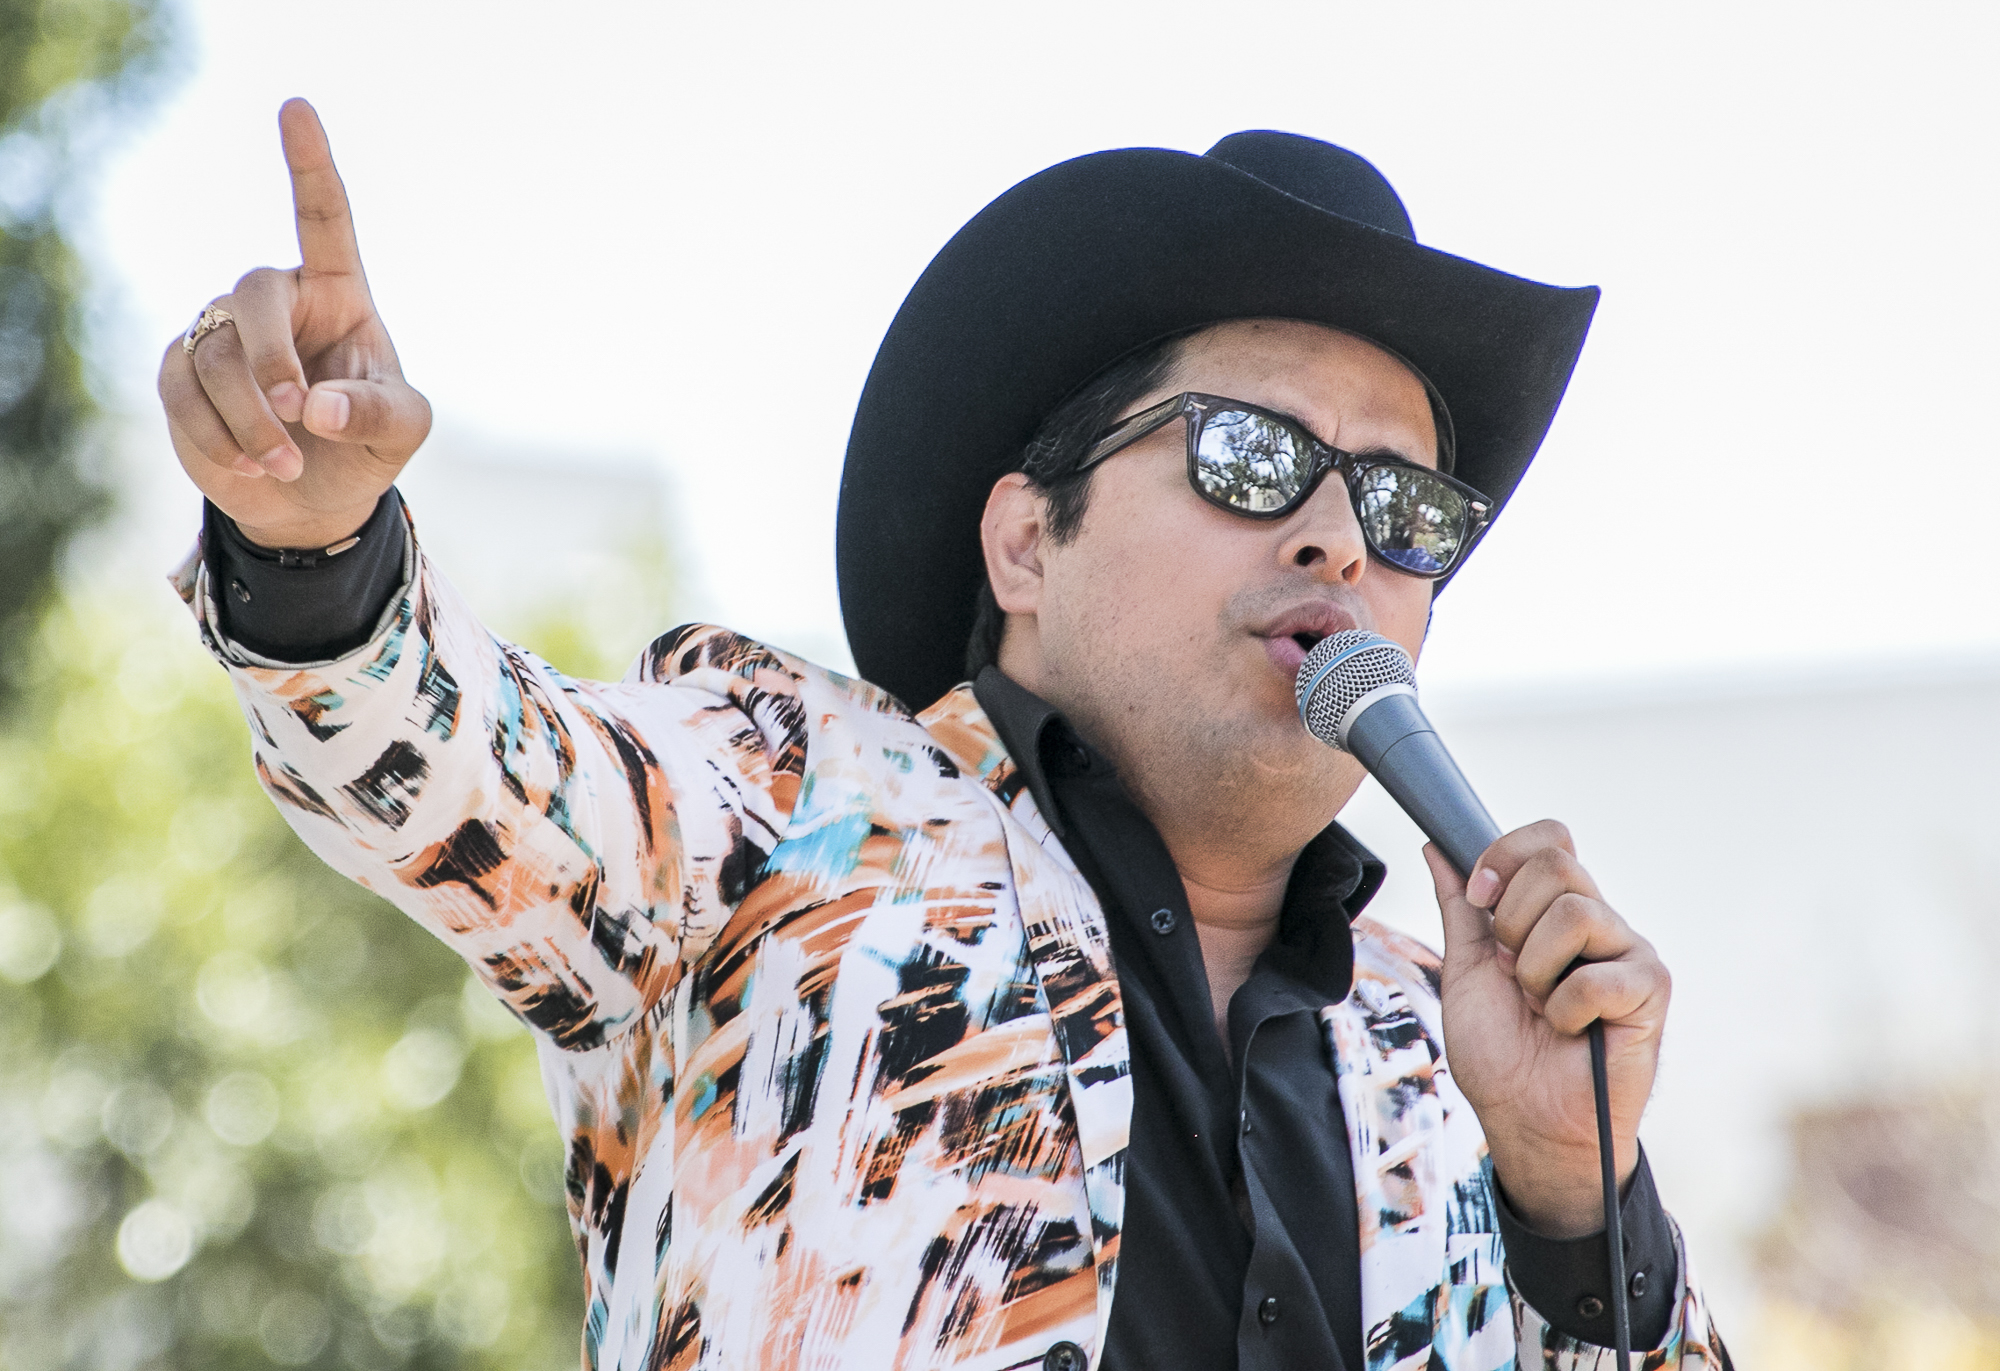 A singer performing for the crowd at  Cinco De Mayo celebrations held at El Pueblo de Los Angeles Historic Monument at Olvera Street on May 5th, 2018 was performed by students from a local middle school.  (Downtown, Los Angeles, California, Saturday, May 5th, 2018.) (Ashutosh Bikram Singh/Corsair Photo)